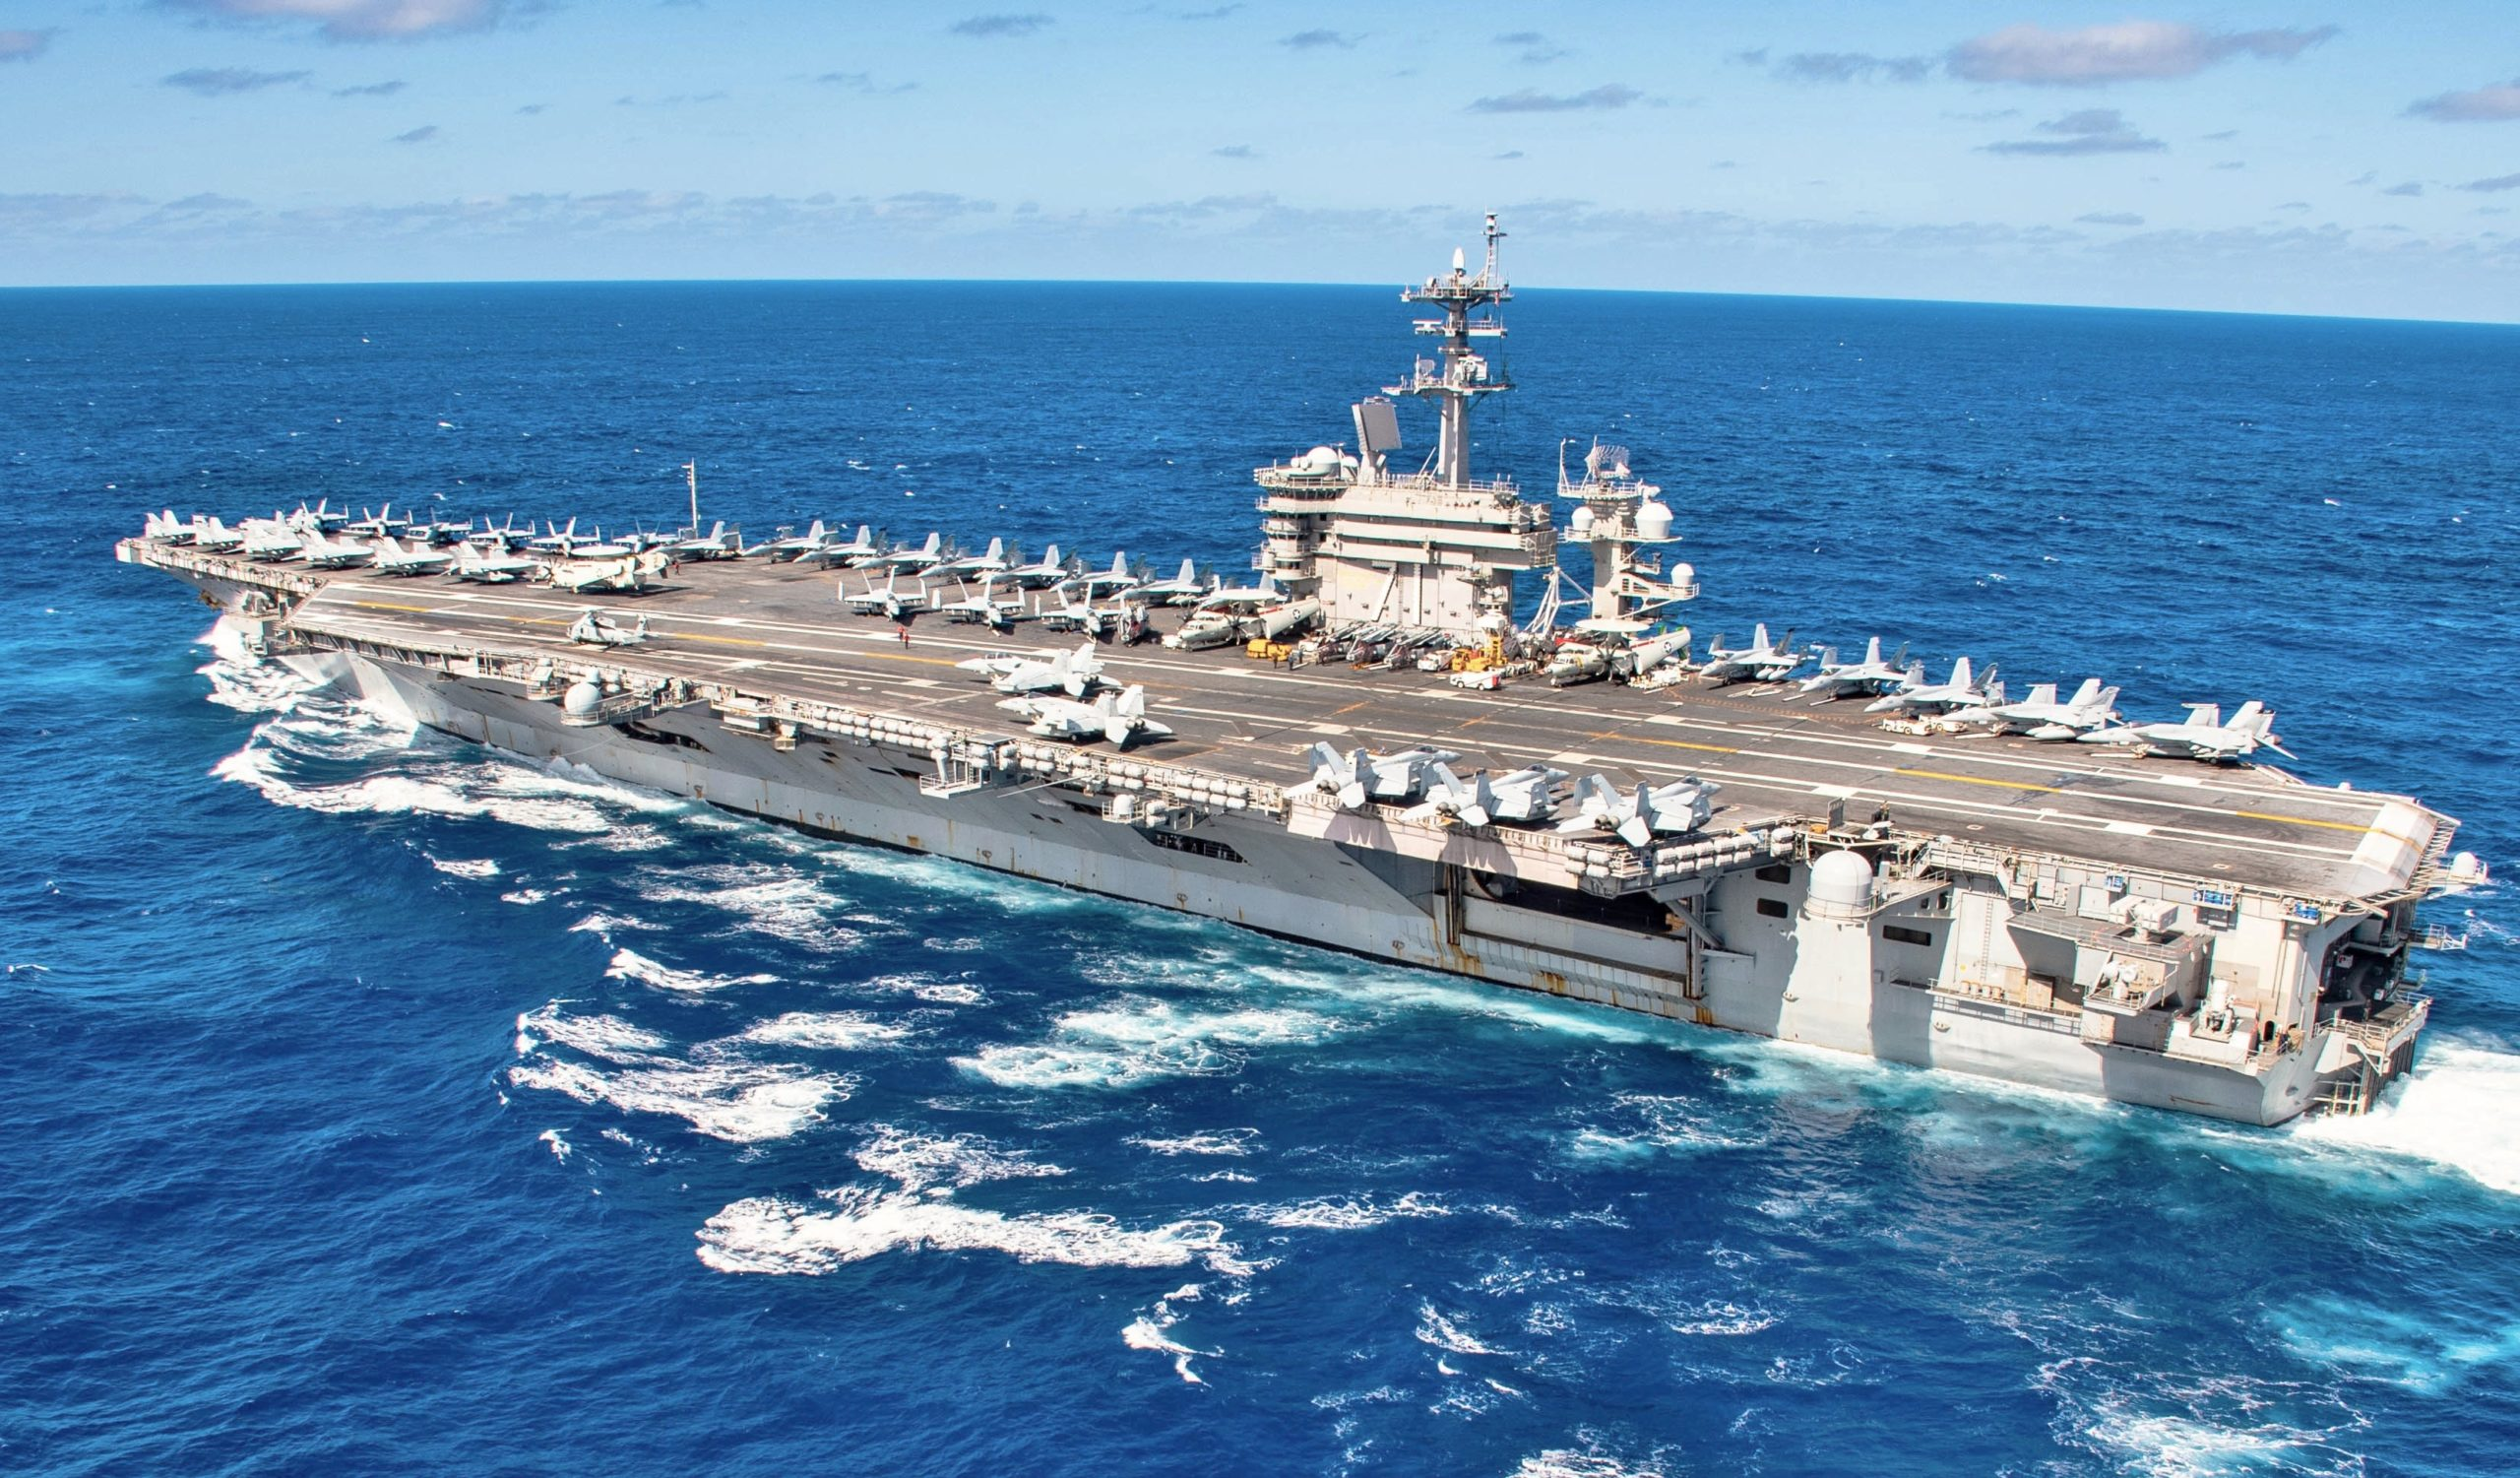 The aircraft carrier USS Theodore Roosevelt CVN 71 transits the Pacific Ocean Jan  25 2020 scaled jpg?fit=2560,1501&ssl=1.